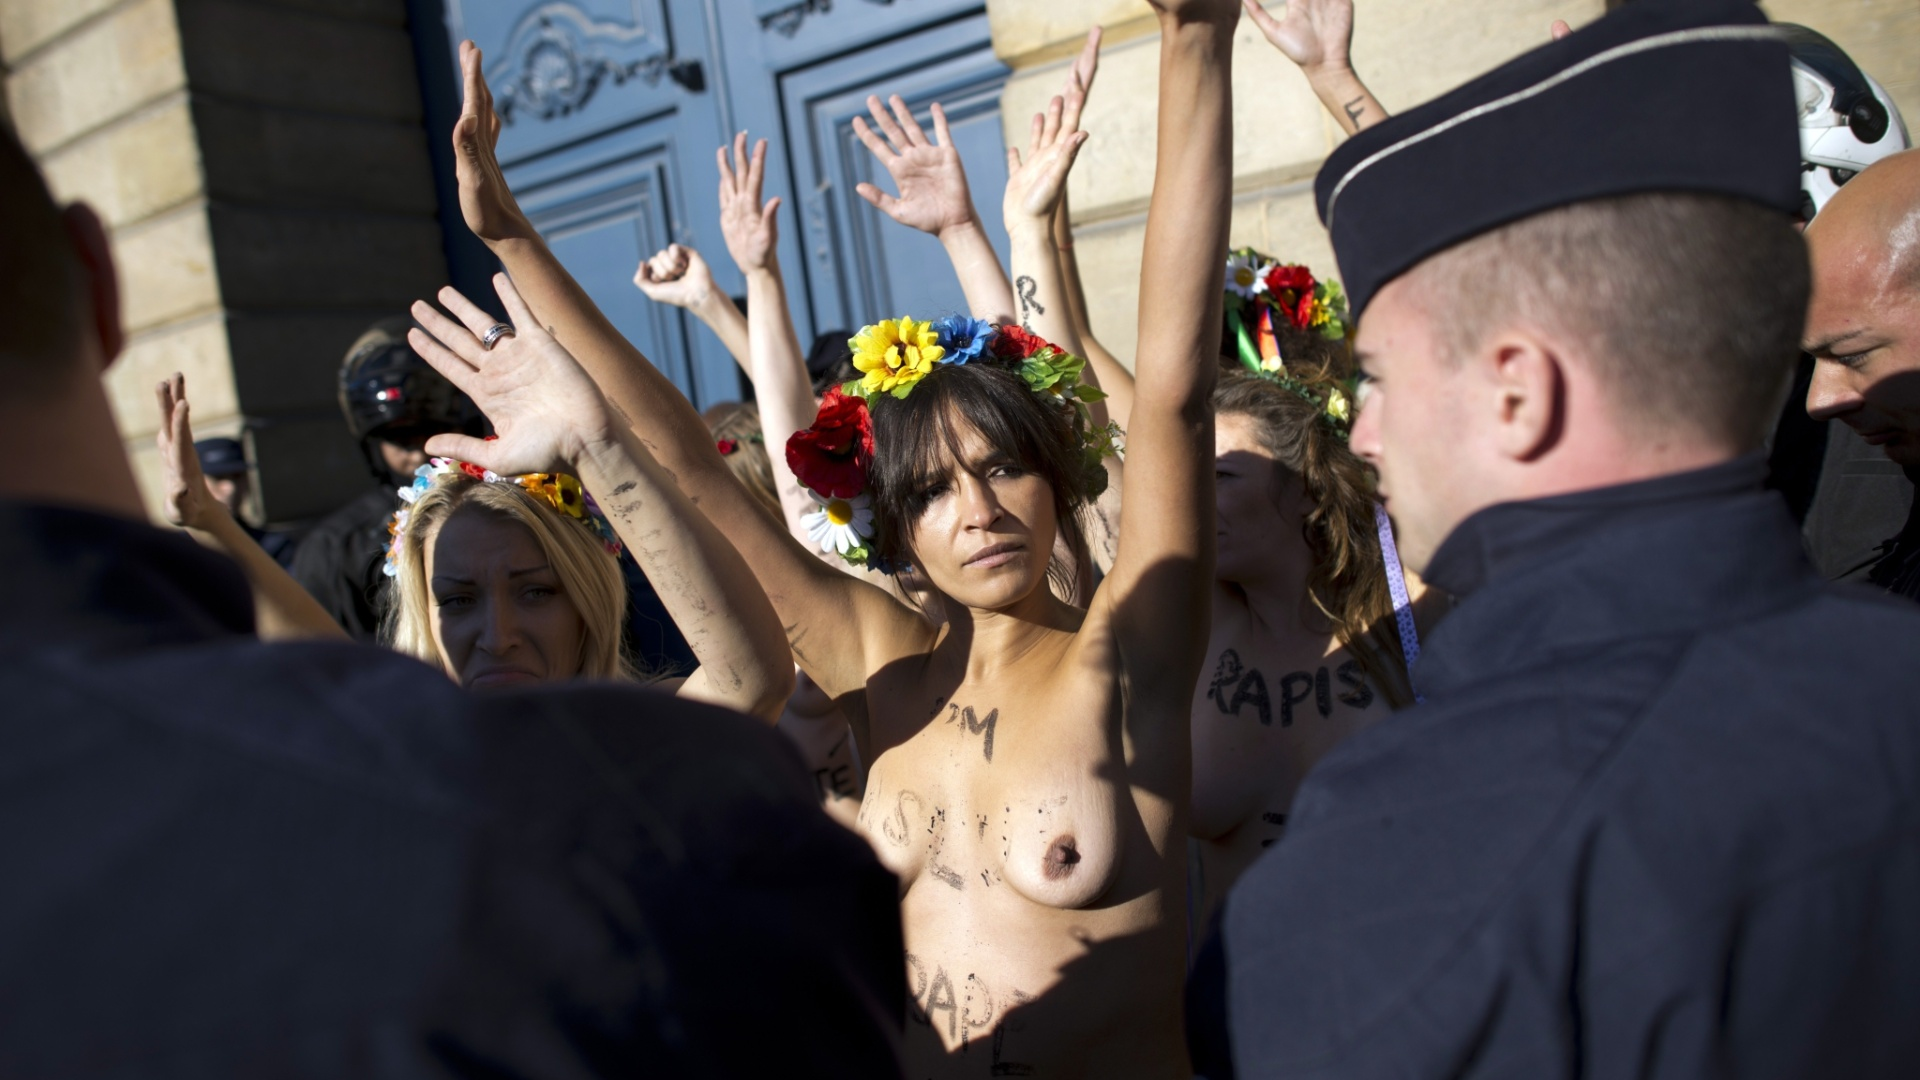 15.out.2012 - Ativistas do Femen realizam protesto prximo ao Ministrio de Justia francs, em Paris, na Frana. Elas protestam contra o veredito dado no caso de um estupro coletivo contra duas adolescentes, no qual quatro acusados foram considerados culpados, e 10 foram inocentados